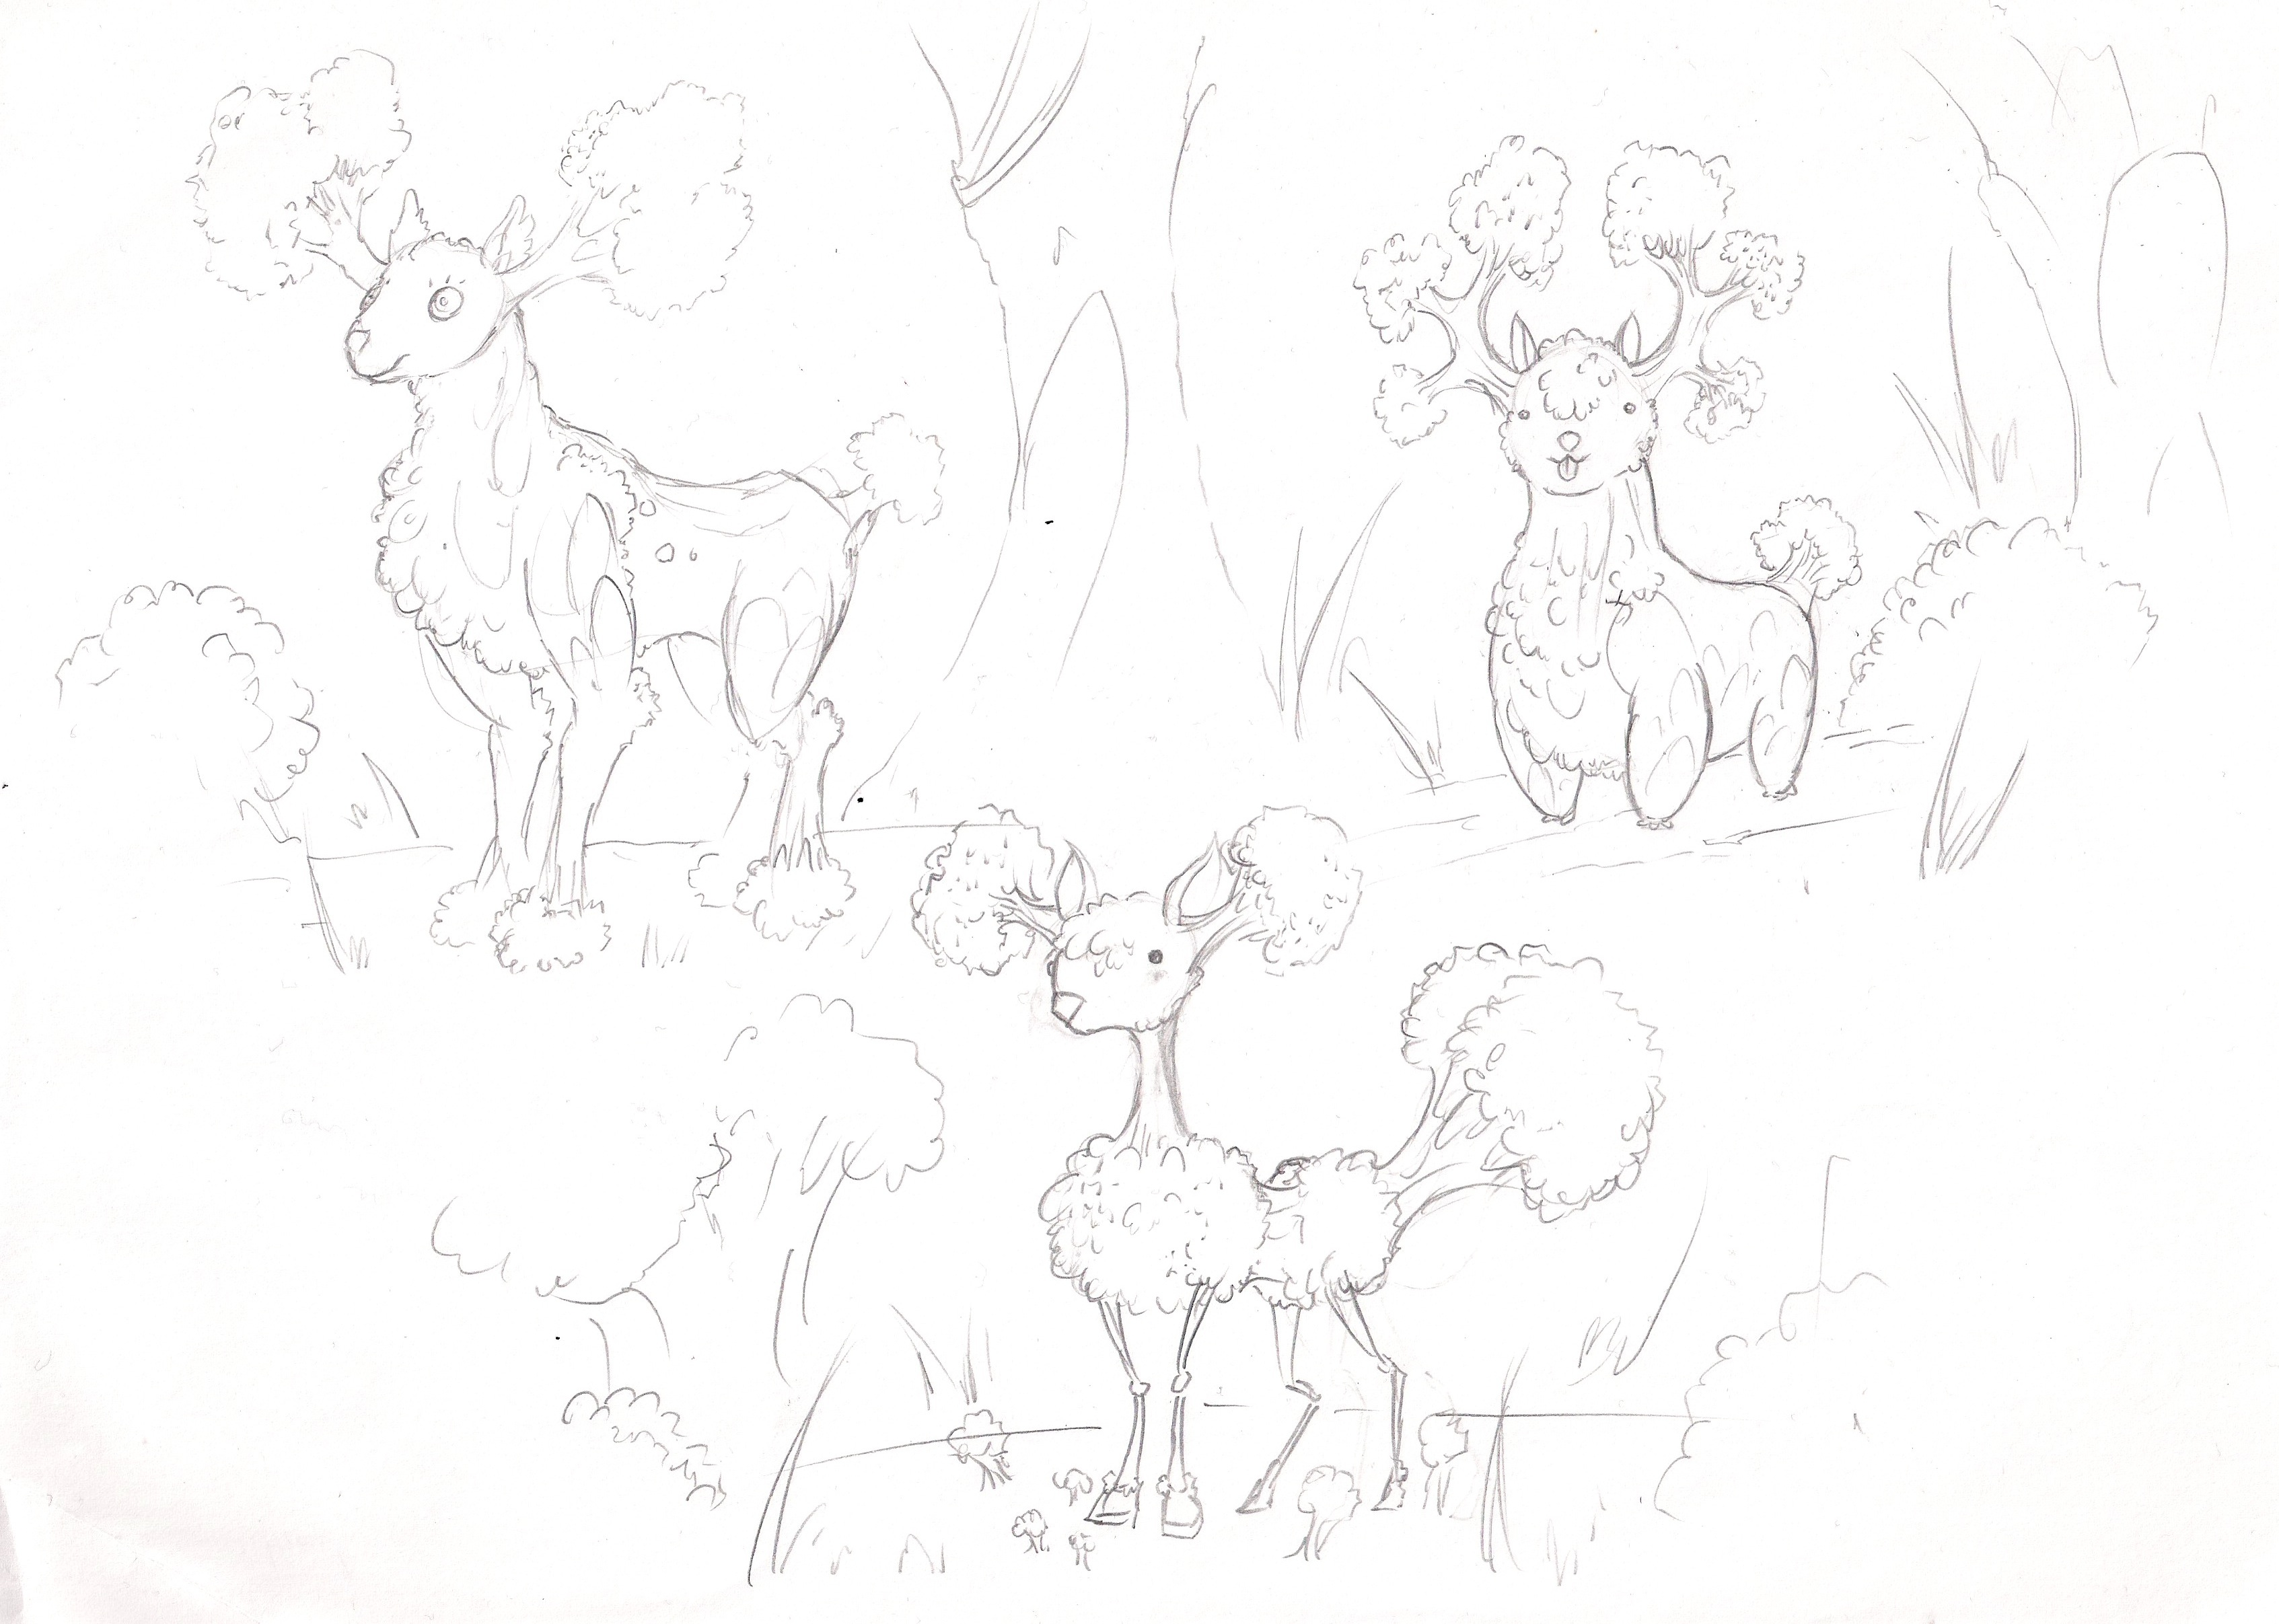 se_broccolistag_draft_01